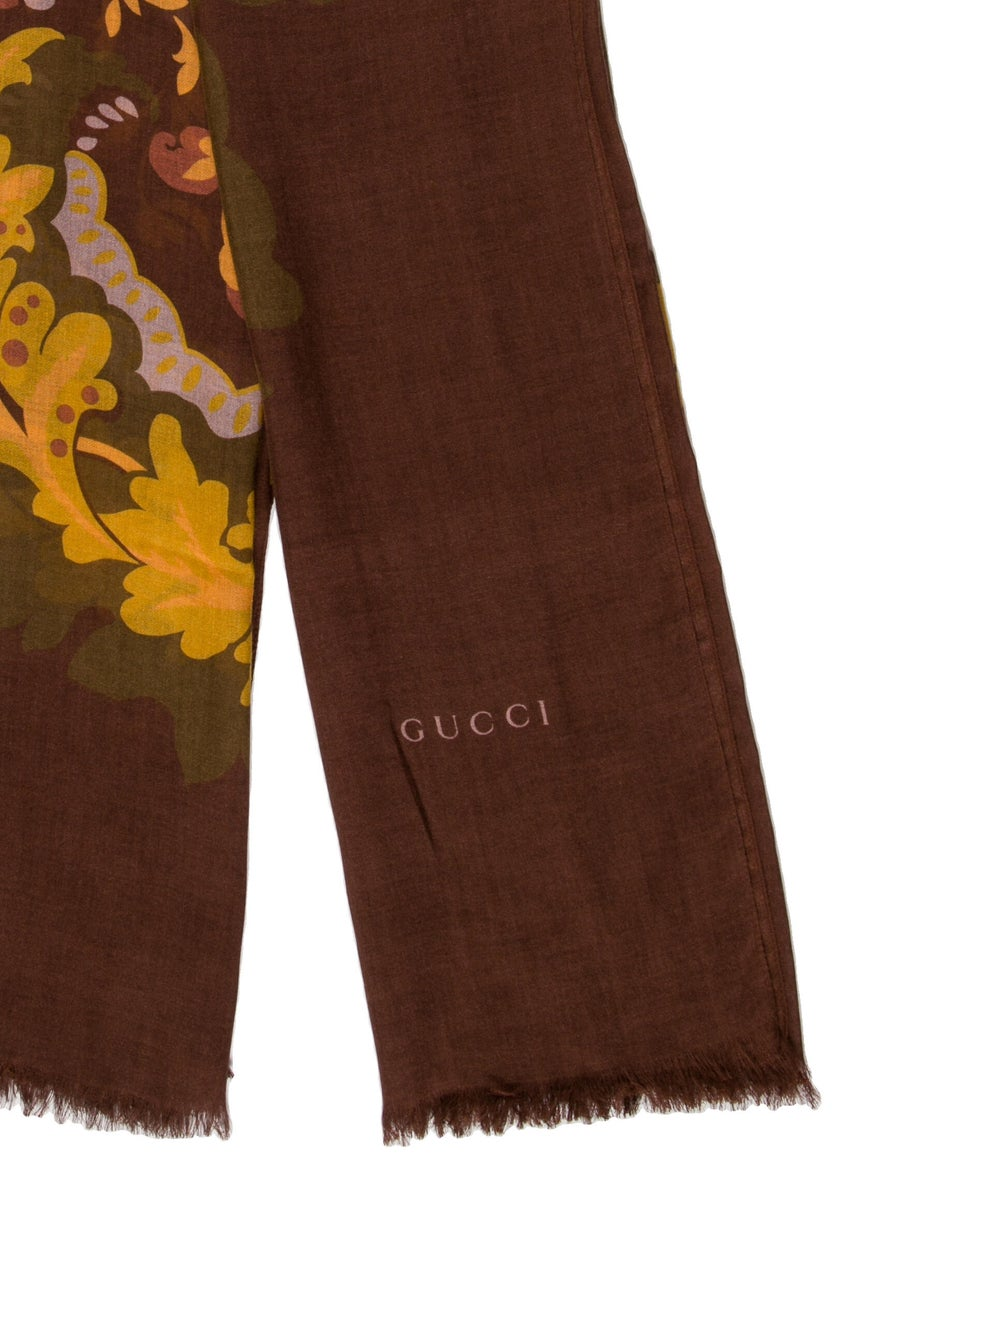 Gucci Floral Print Scarf w/ Tags Brown - image 2